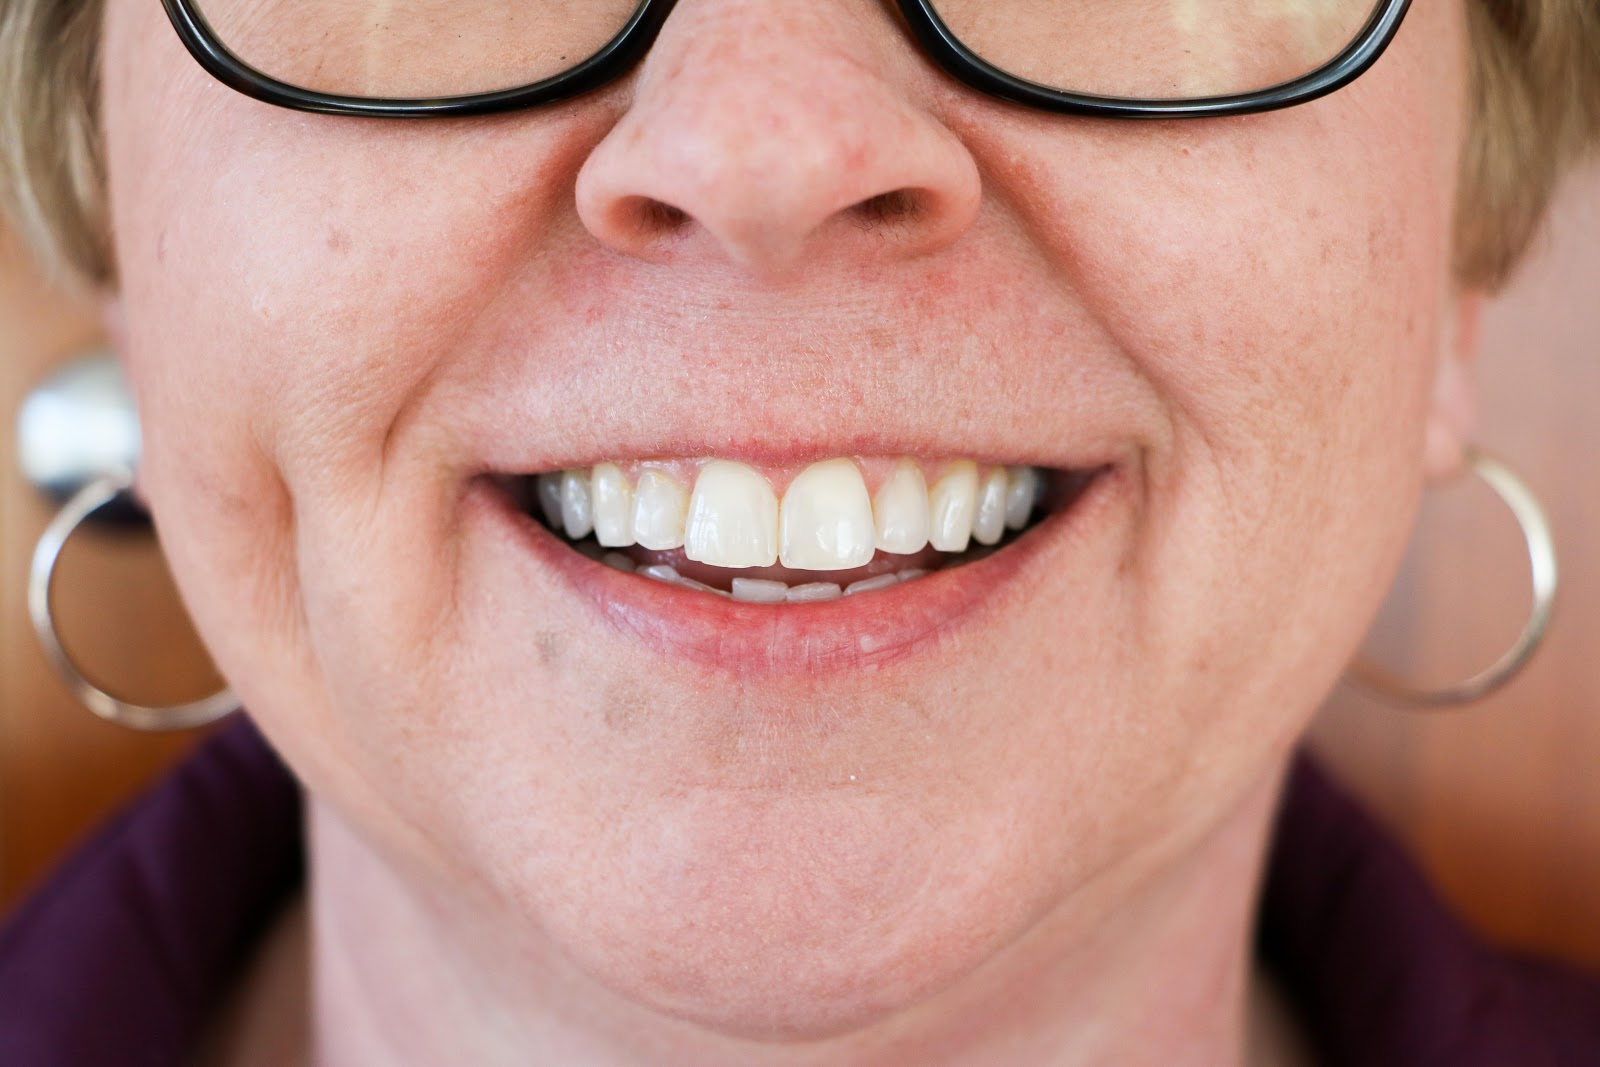 Stephanie's teeth after using Smile Brilliant